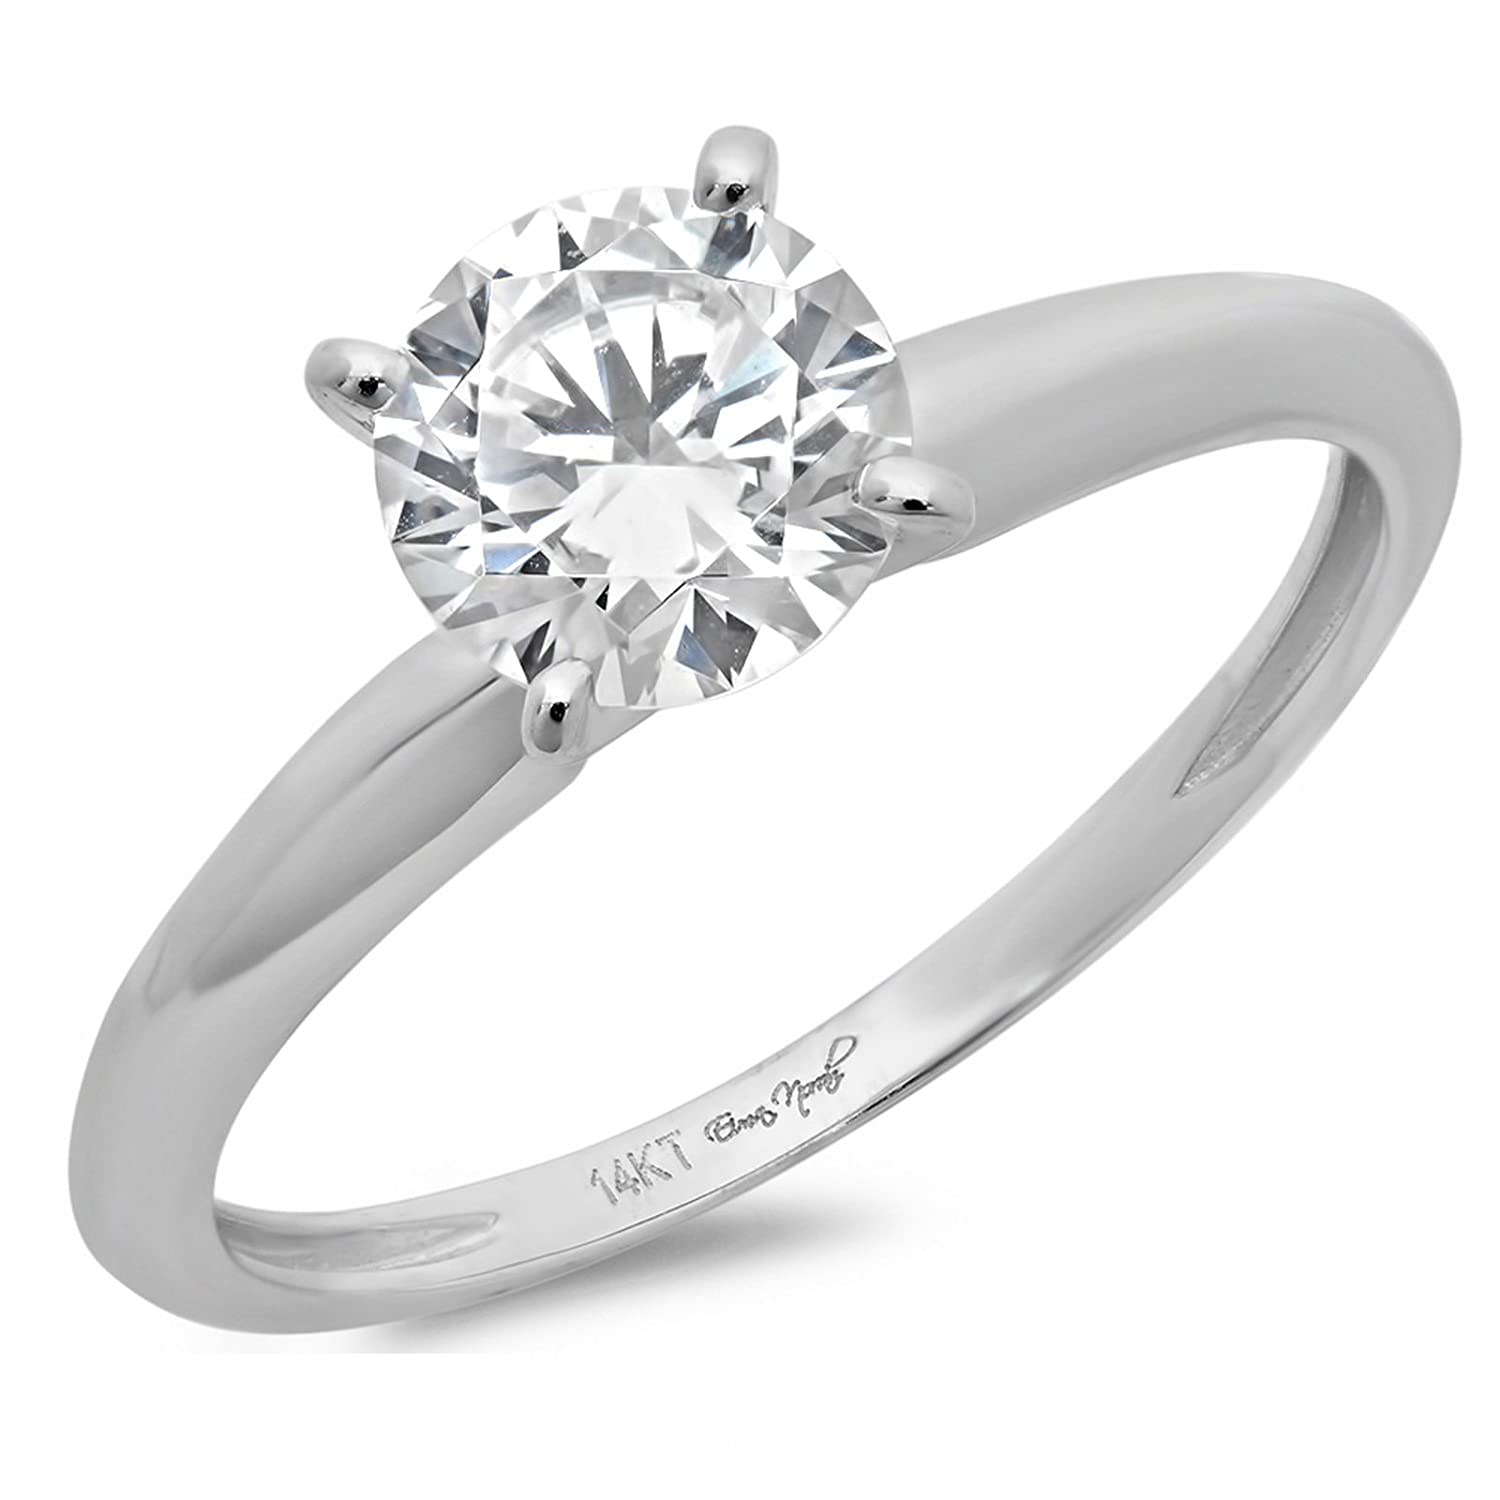 0.7 Ct Brilliant Round Cut 4-Prong Solitaire Engagement Promise Wedding Bridal Anniversary Ring 14K White Gold, Clara Pucci